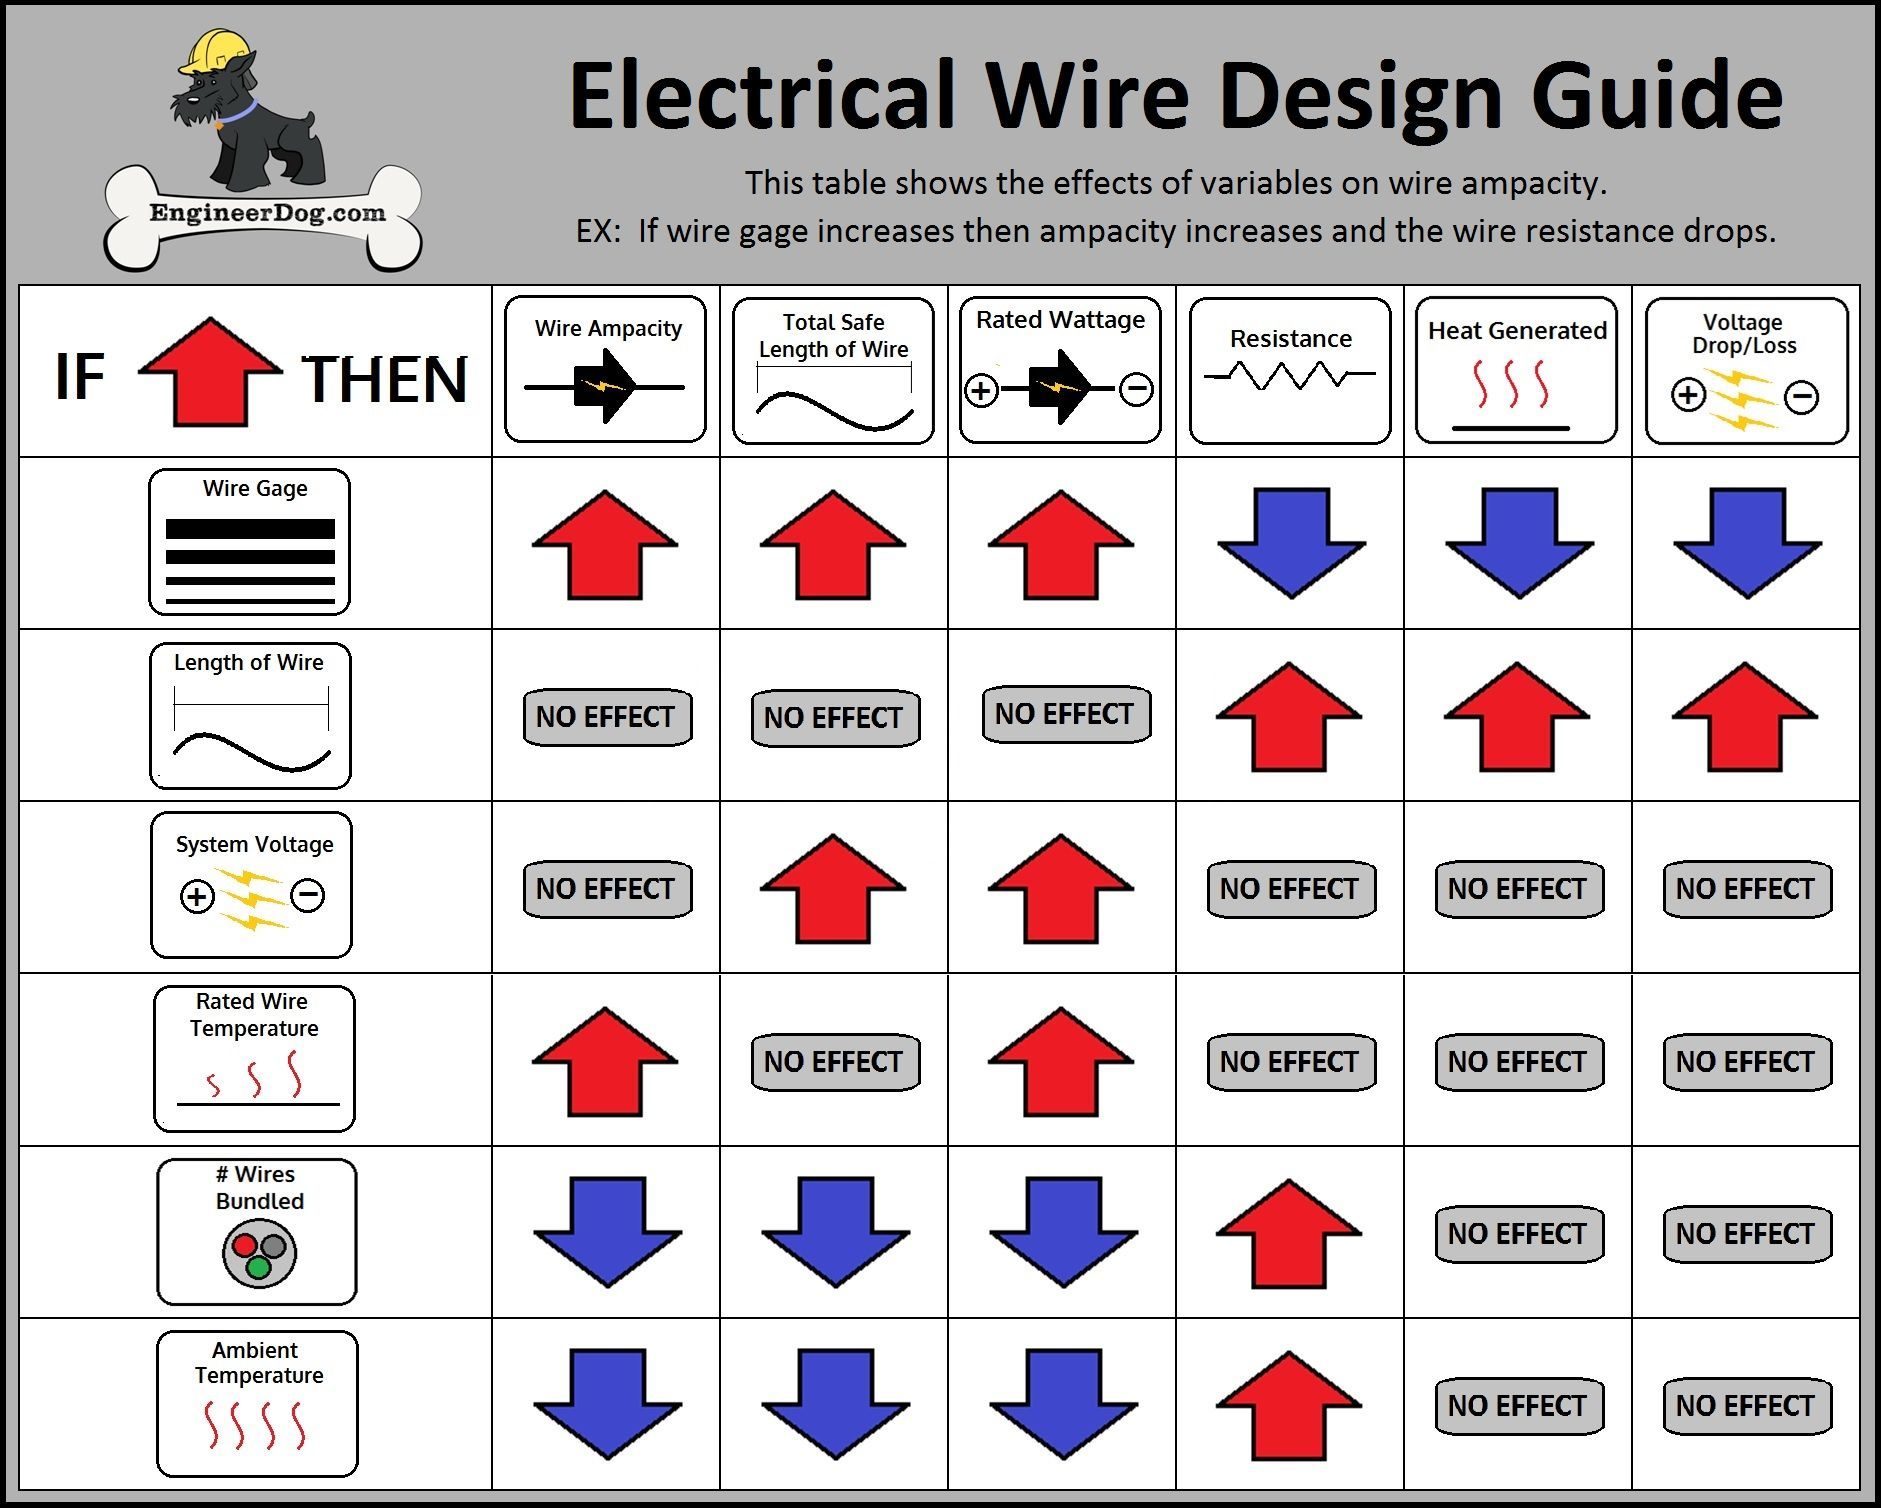 Electrical wire design guide see website for free wire gauge electrical wire design guide see website for free wire gauge calculator guide greentooth Image collections